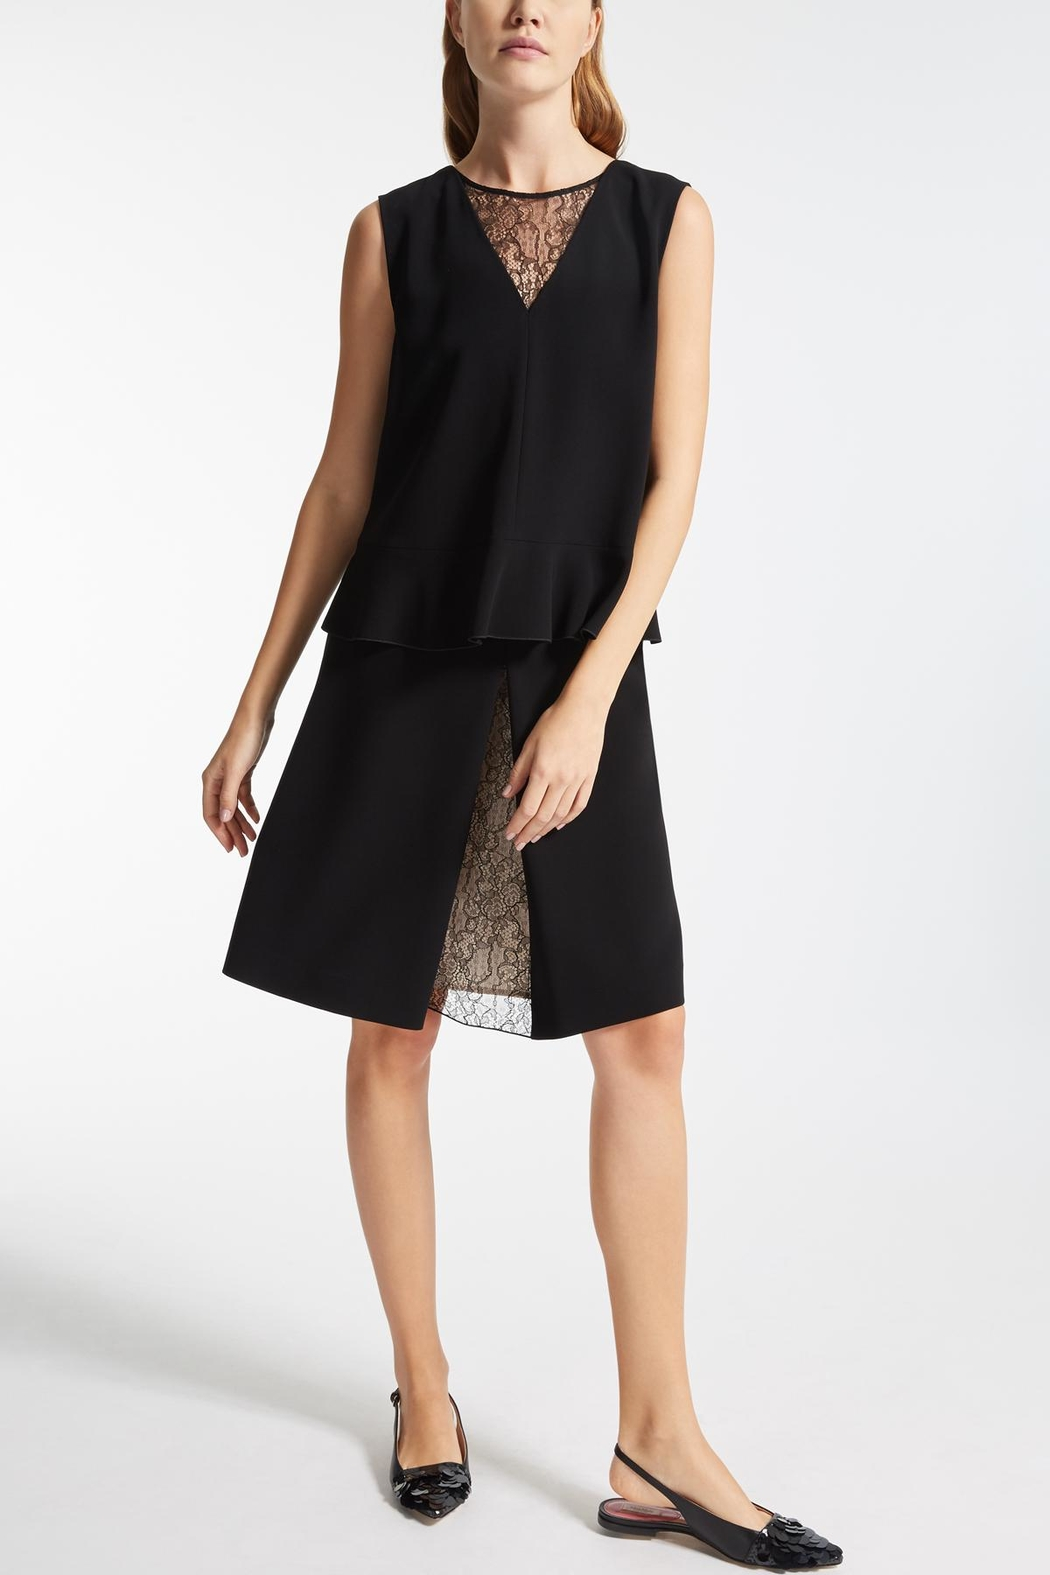 Max Mara Album Black Dress - Main Image